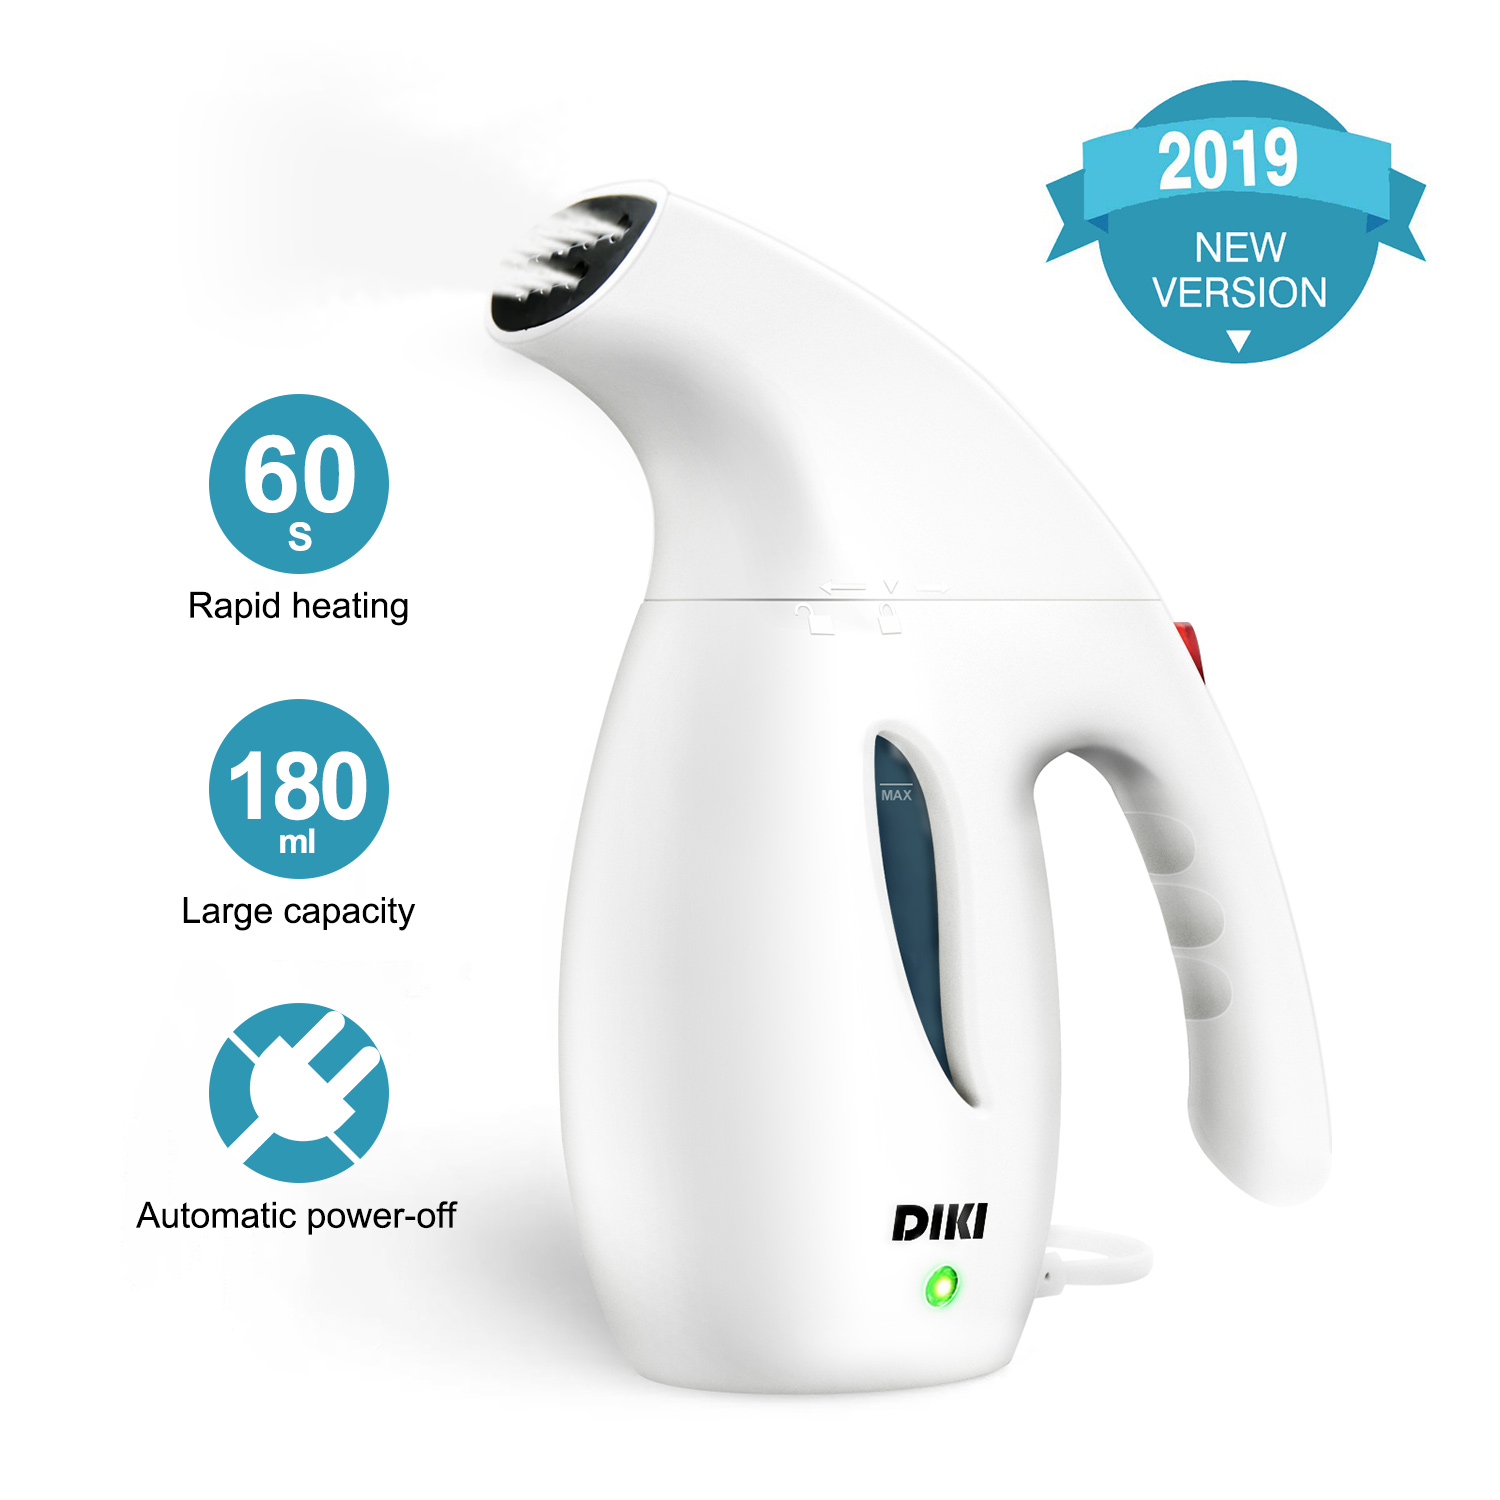 DIKI Clothes Steamer, Handheld Garment Steamer for Clothes, Auto-off, Portable Fabric Hand Steamer for Ironing Wrinkles Remover for Travel, Home and Office, White, Fast Heat-up